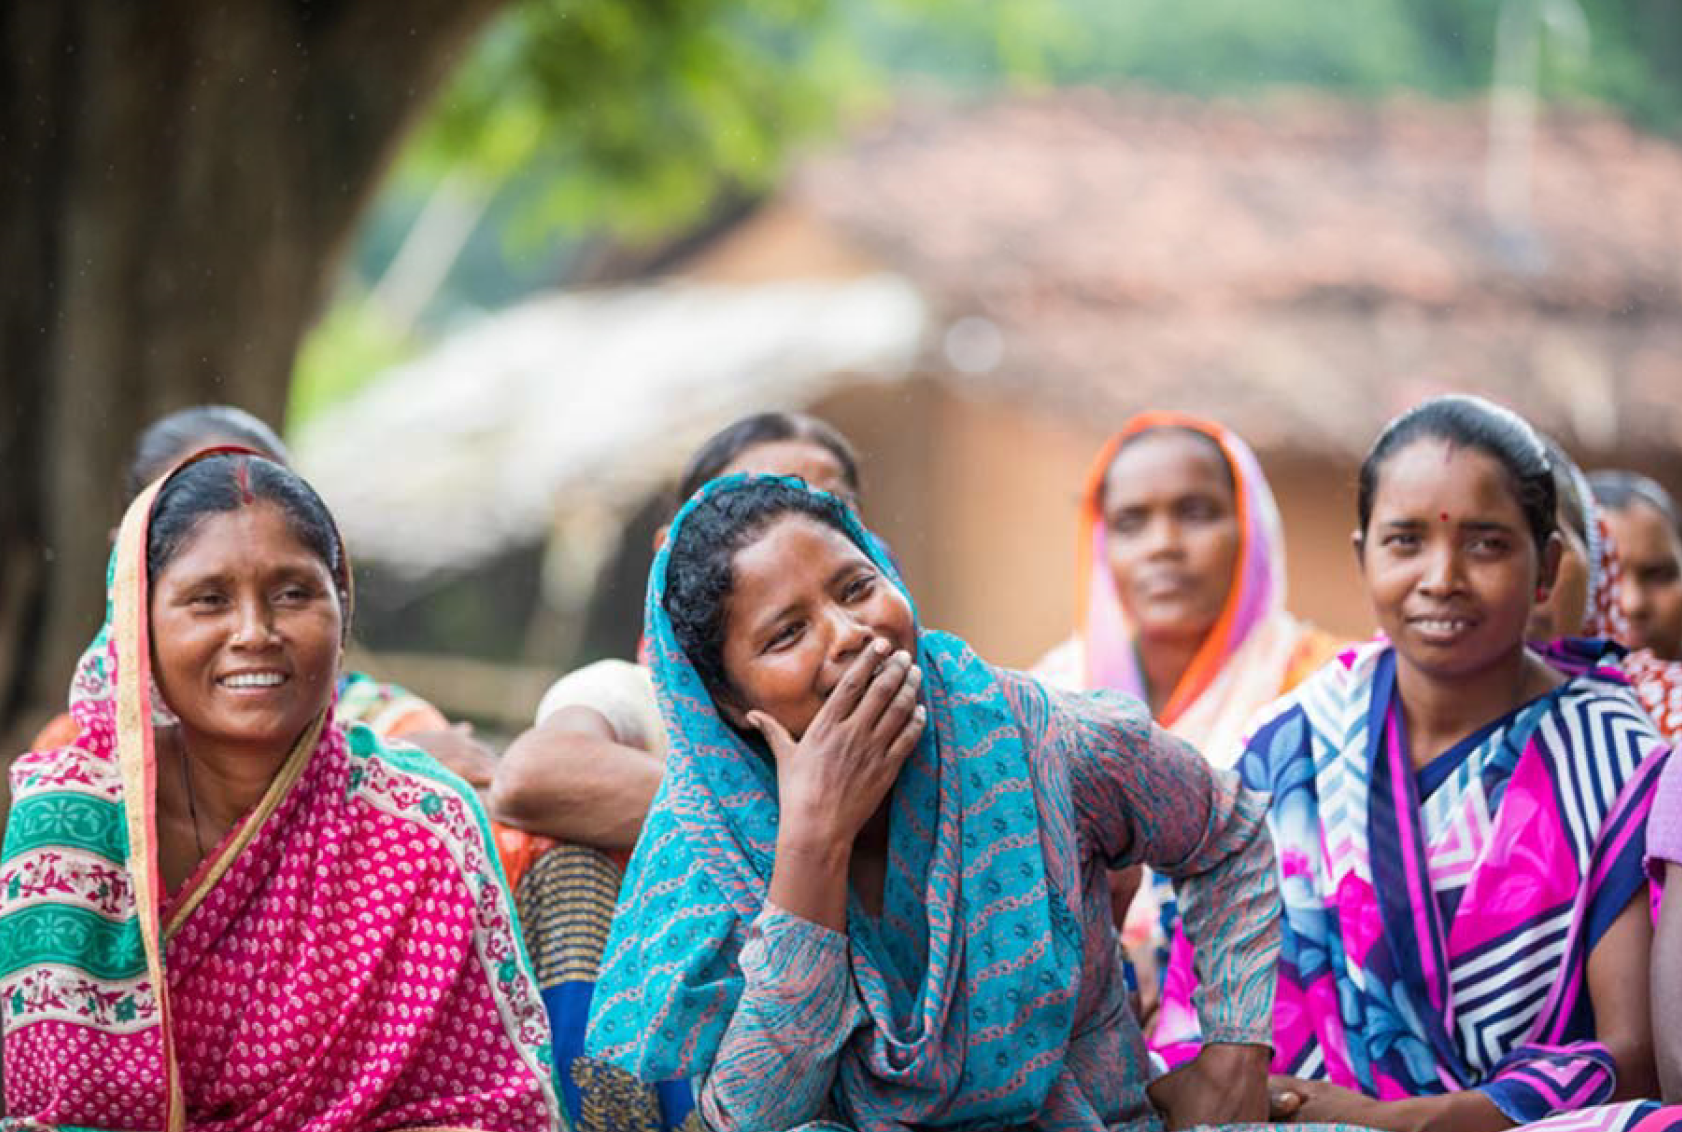 On the path to economic justice and rights: Working towards women's economic empowerment